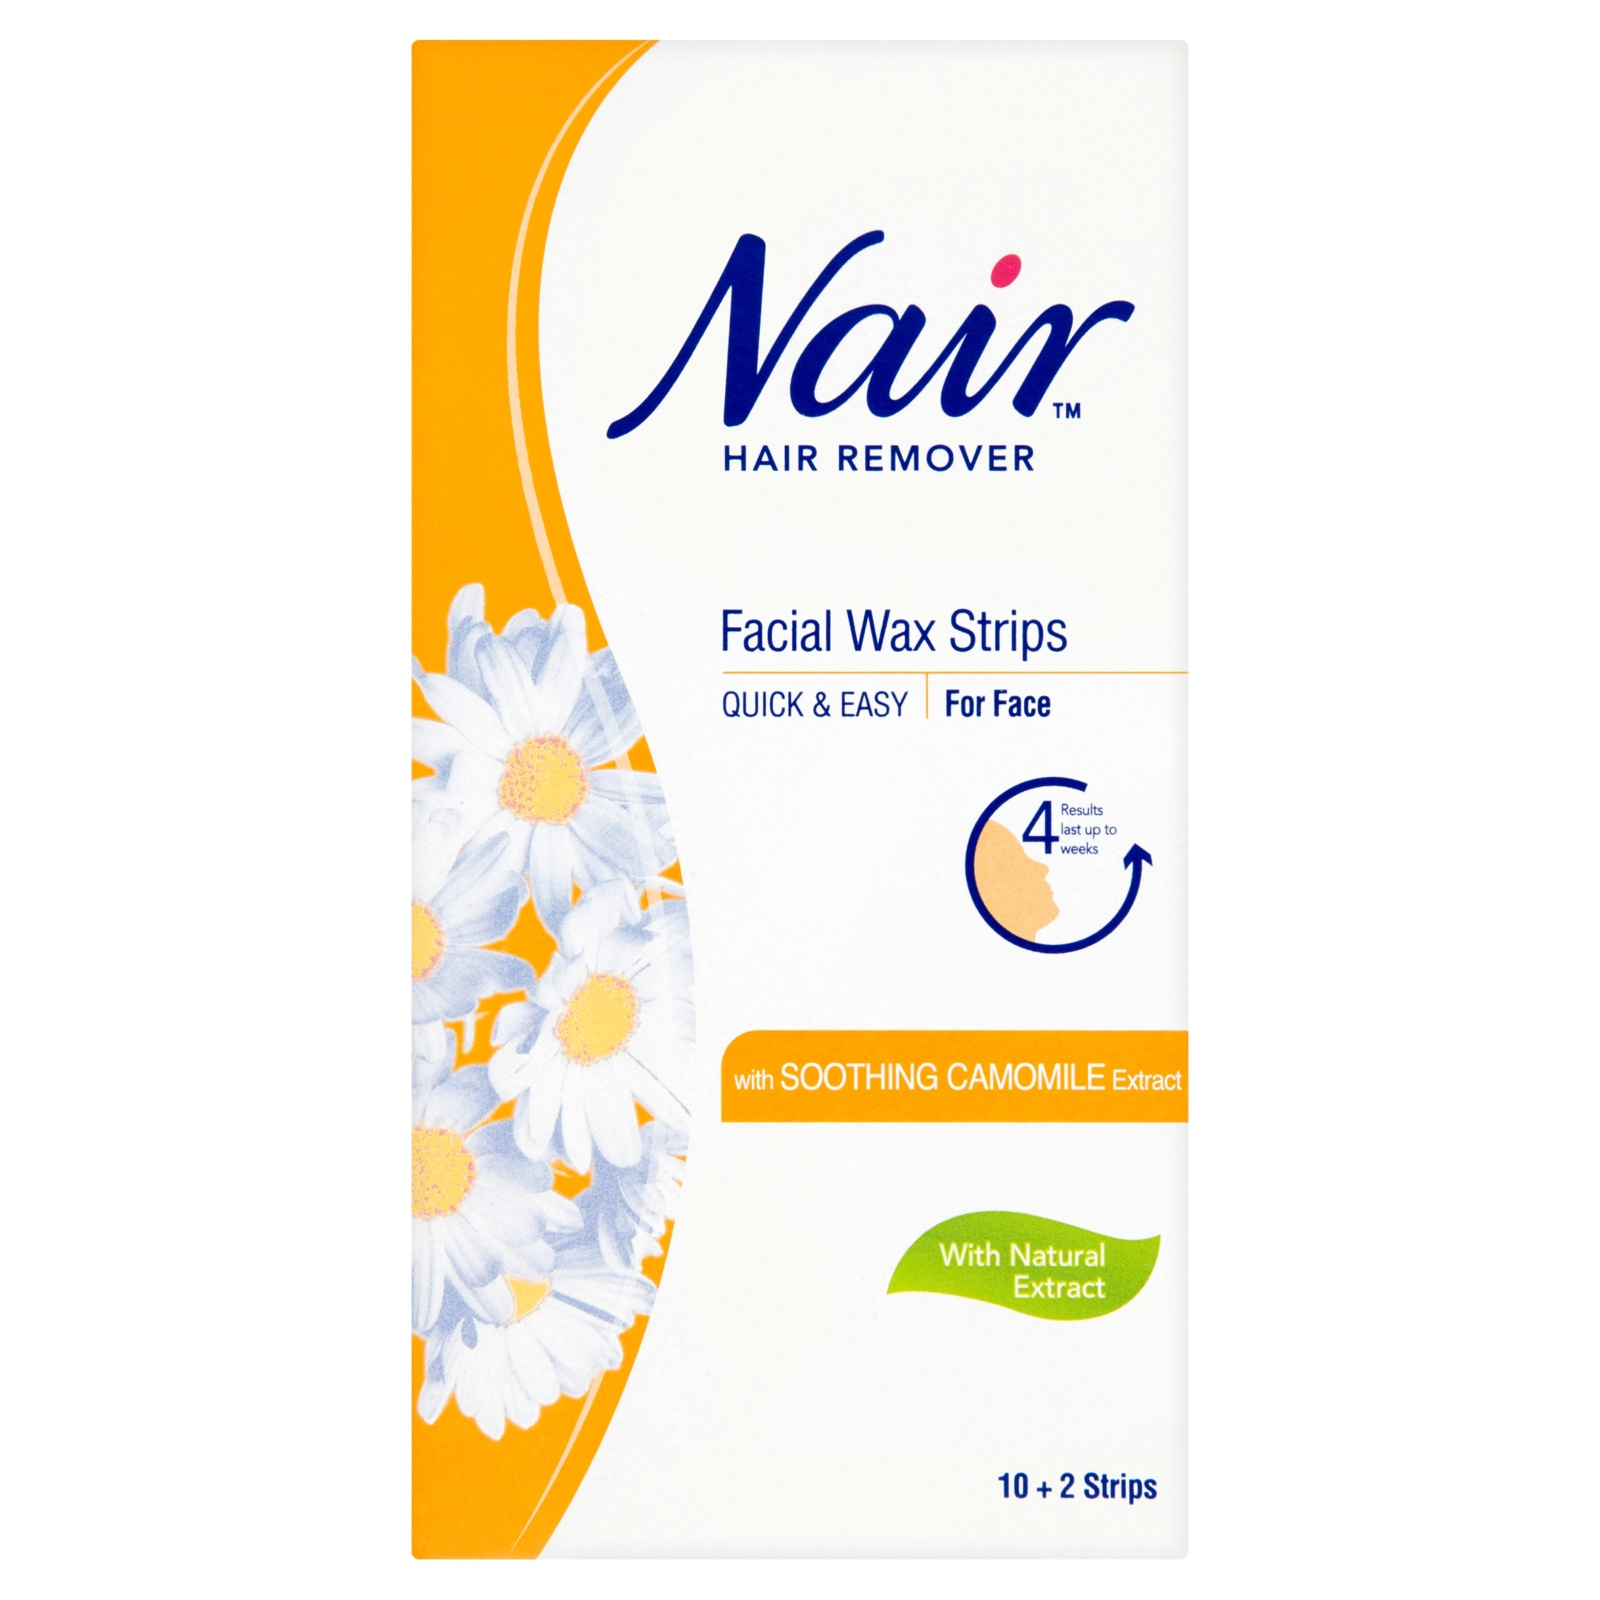 Facial Hair Removal Wax Strips With Soothing Camomile